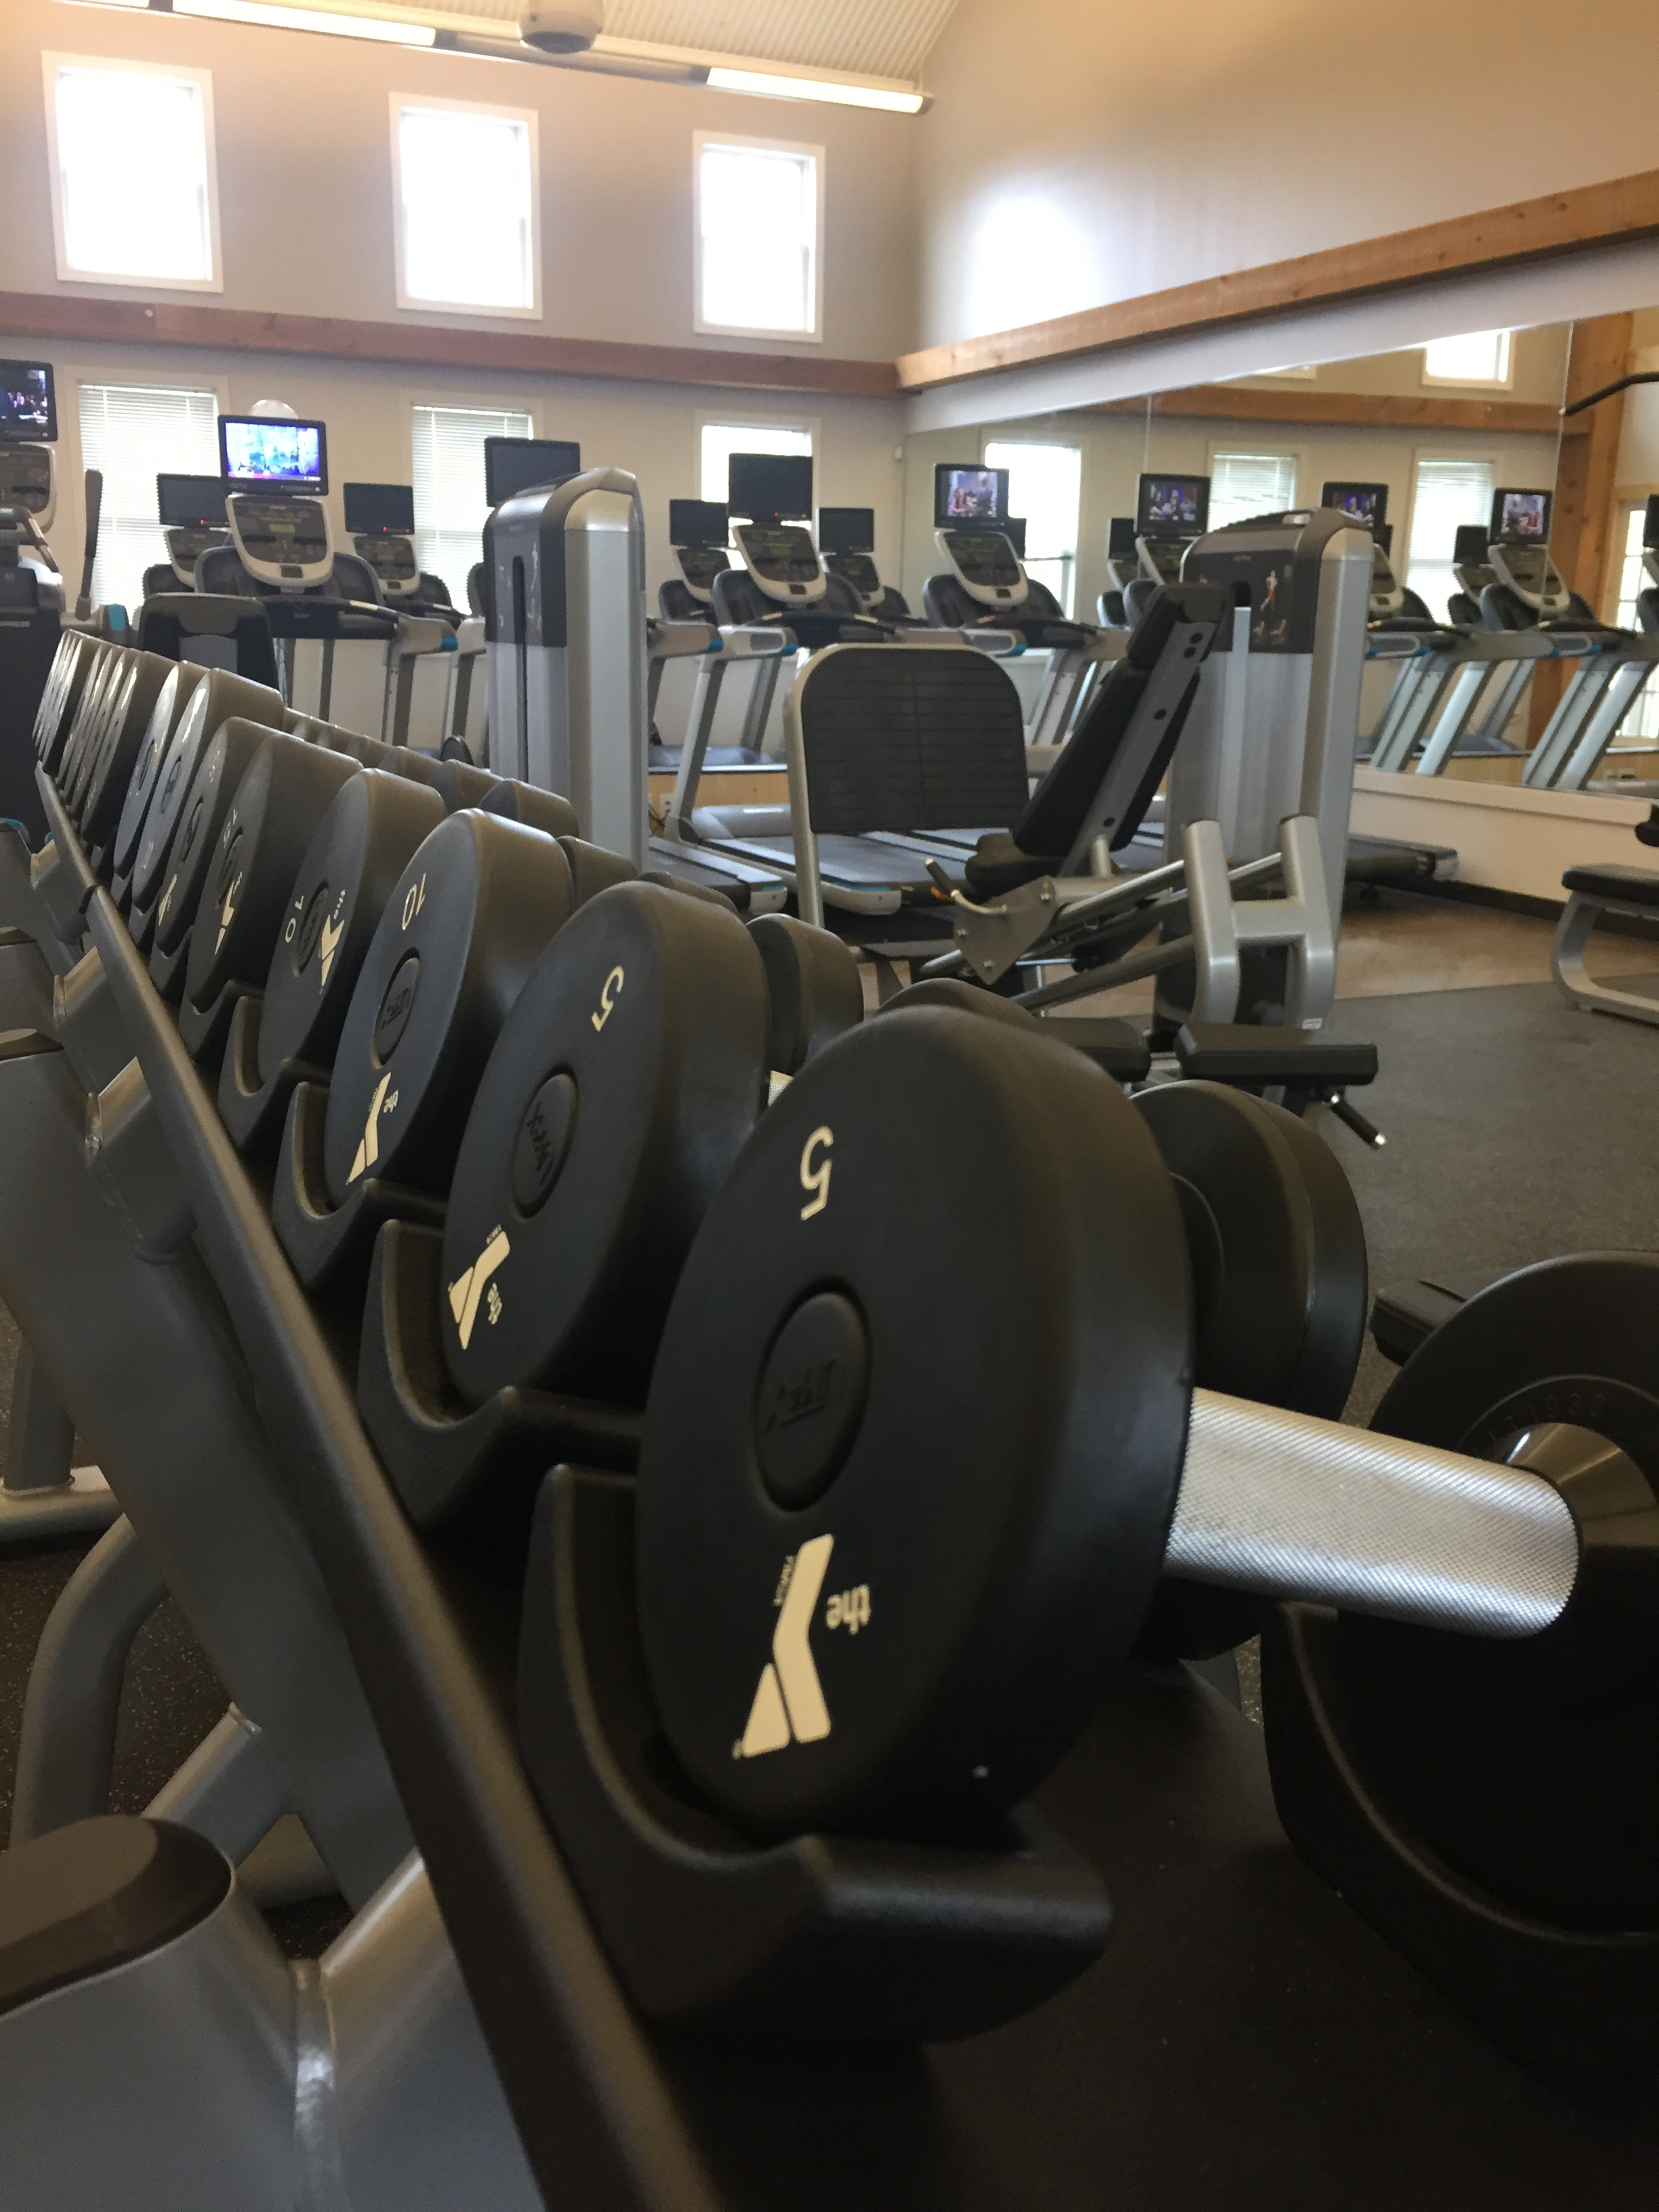 Fitness Center at Middletown YMCA